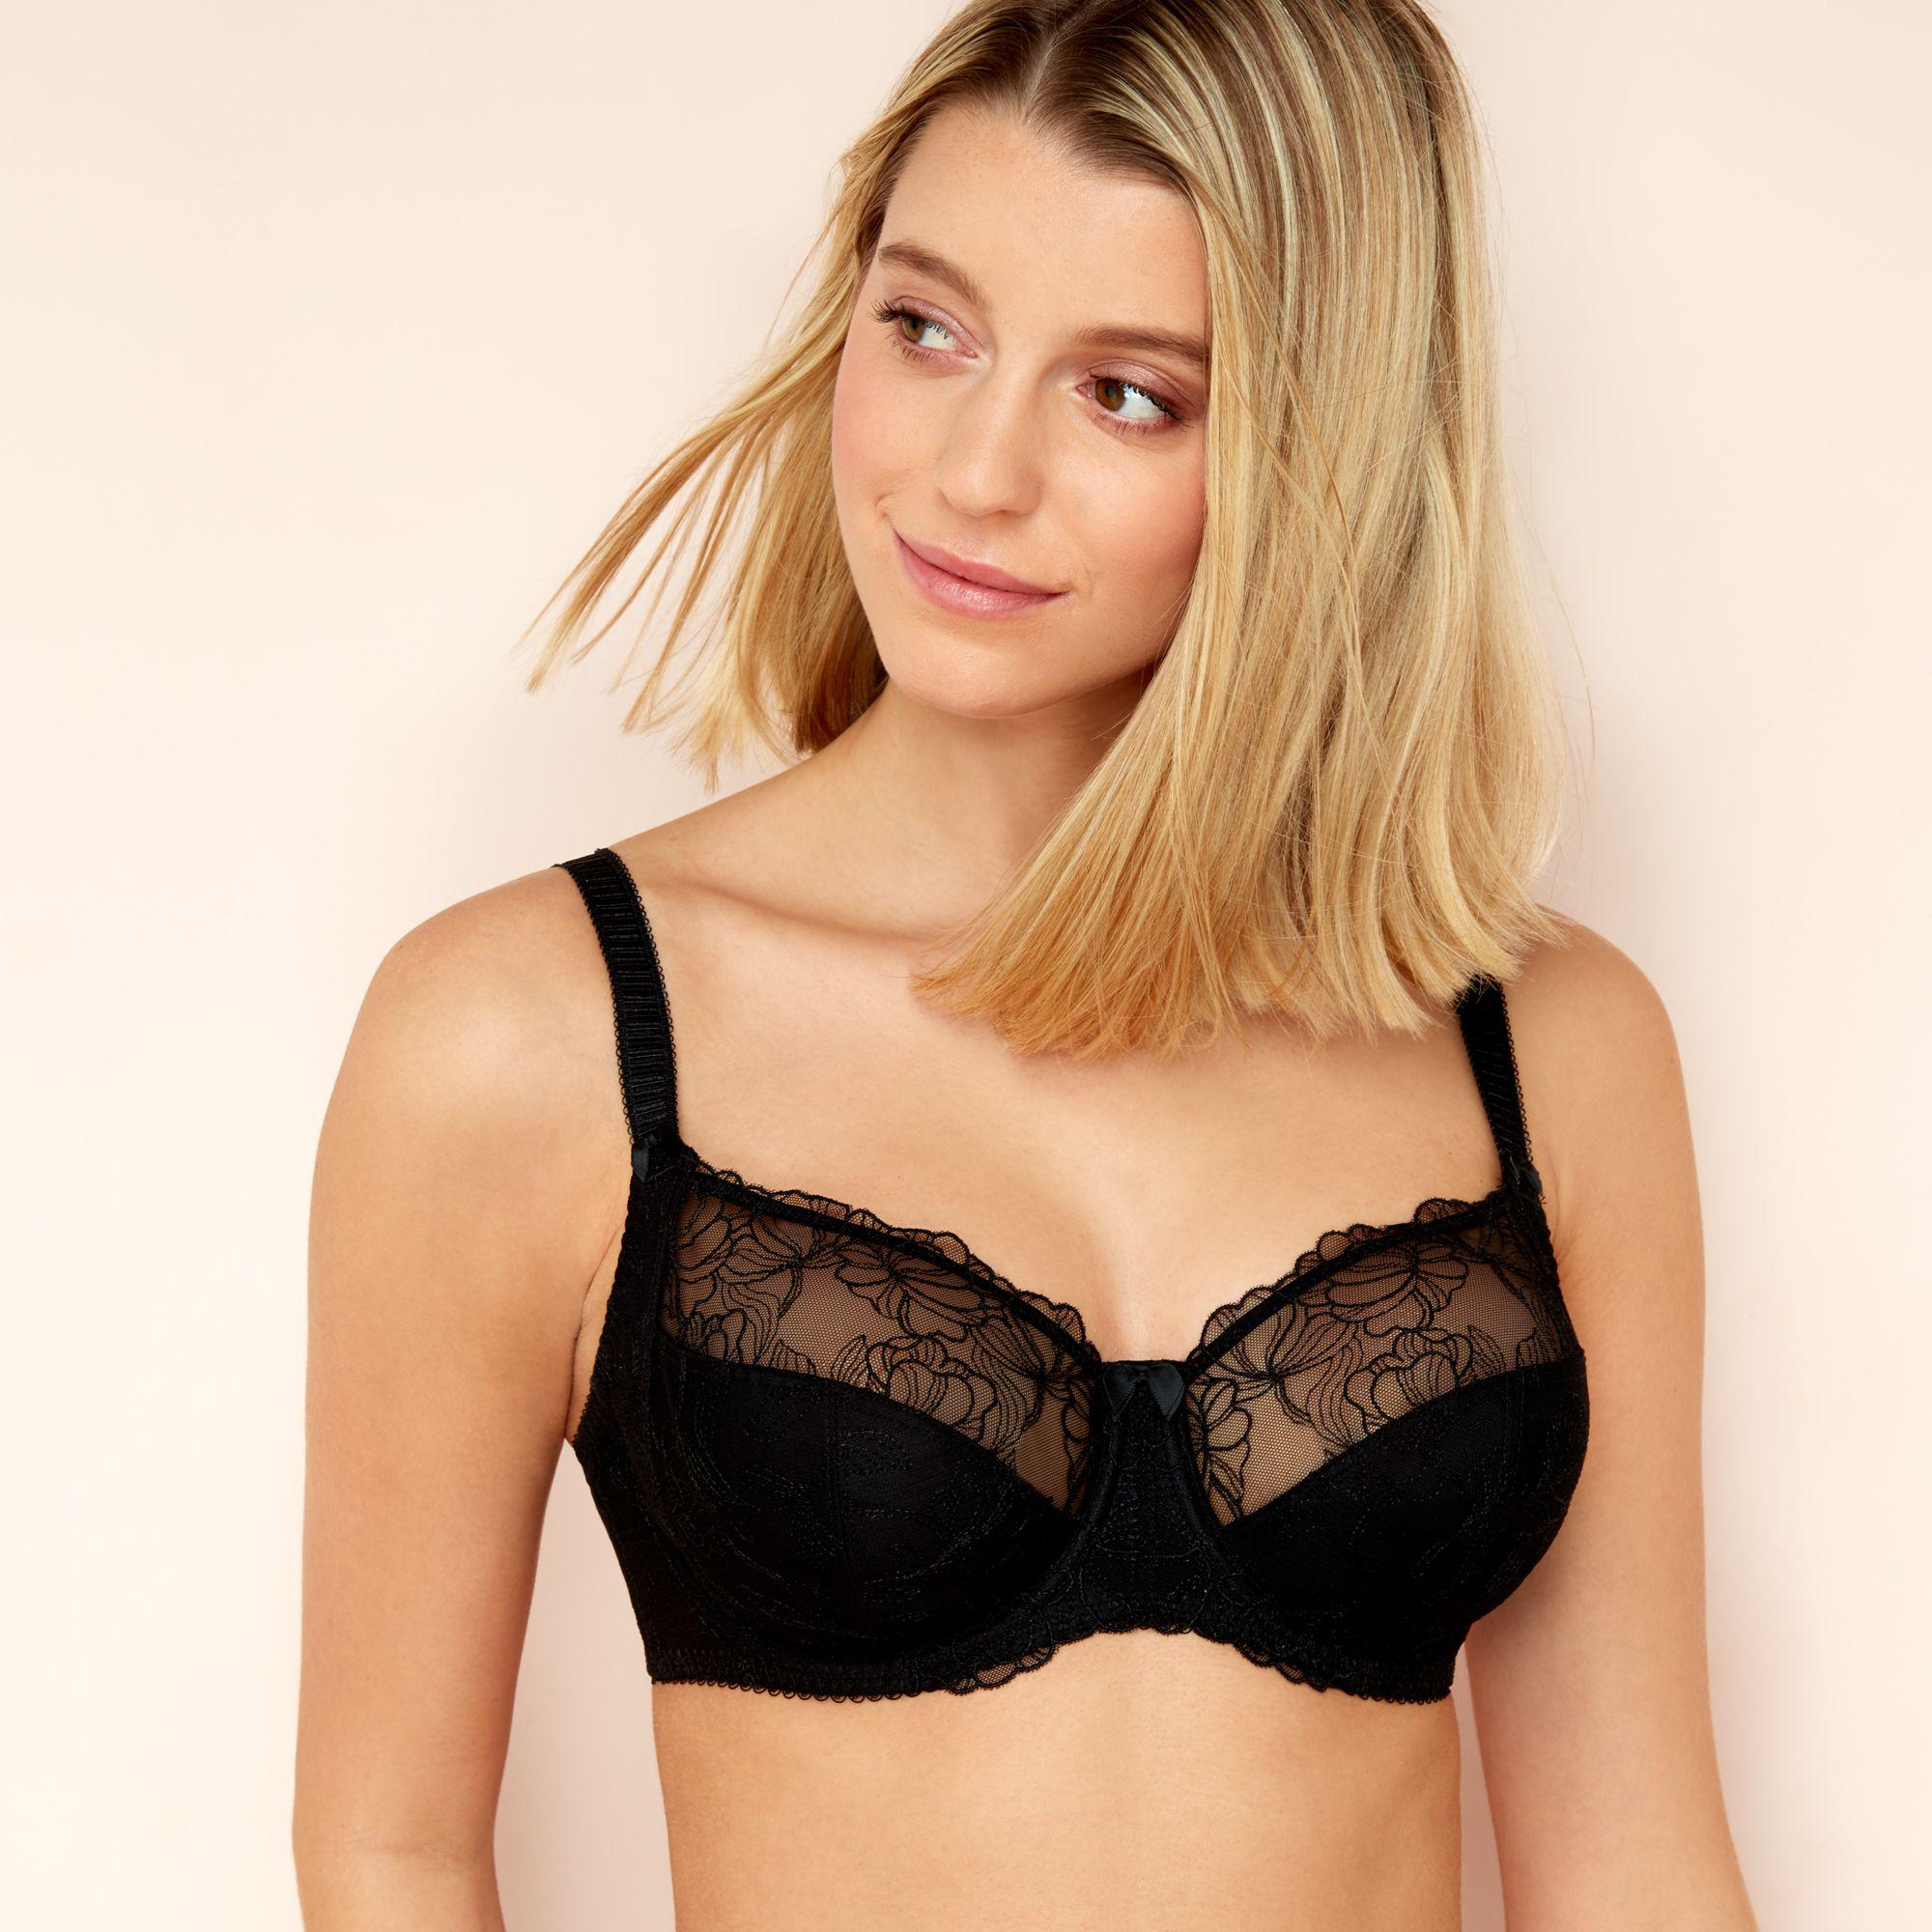 d4bed3f449 Fantasie - Black  estelle  Underwired Non-padded Full Cup Bra - Lyst. View  fullscreen